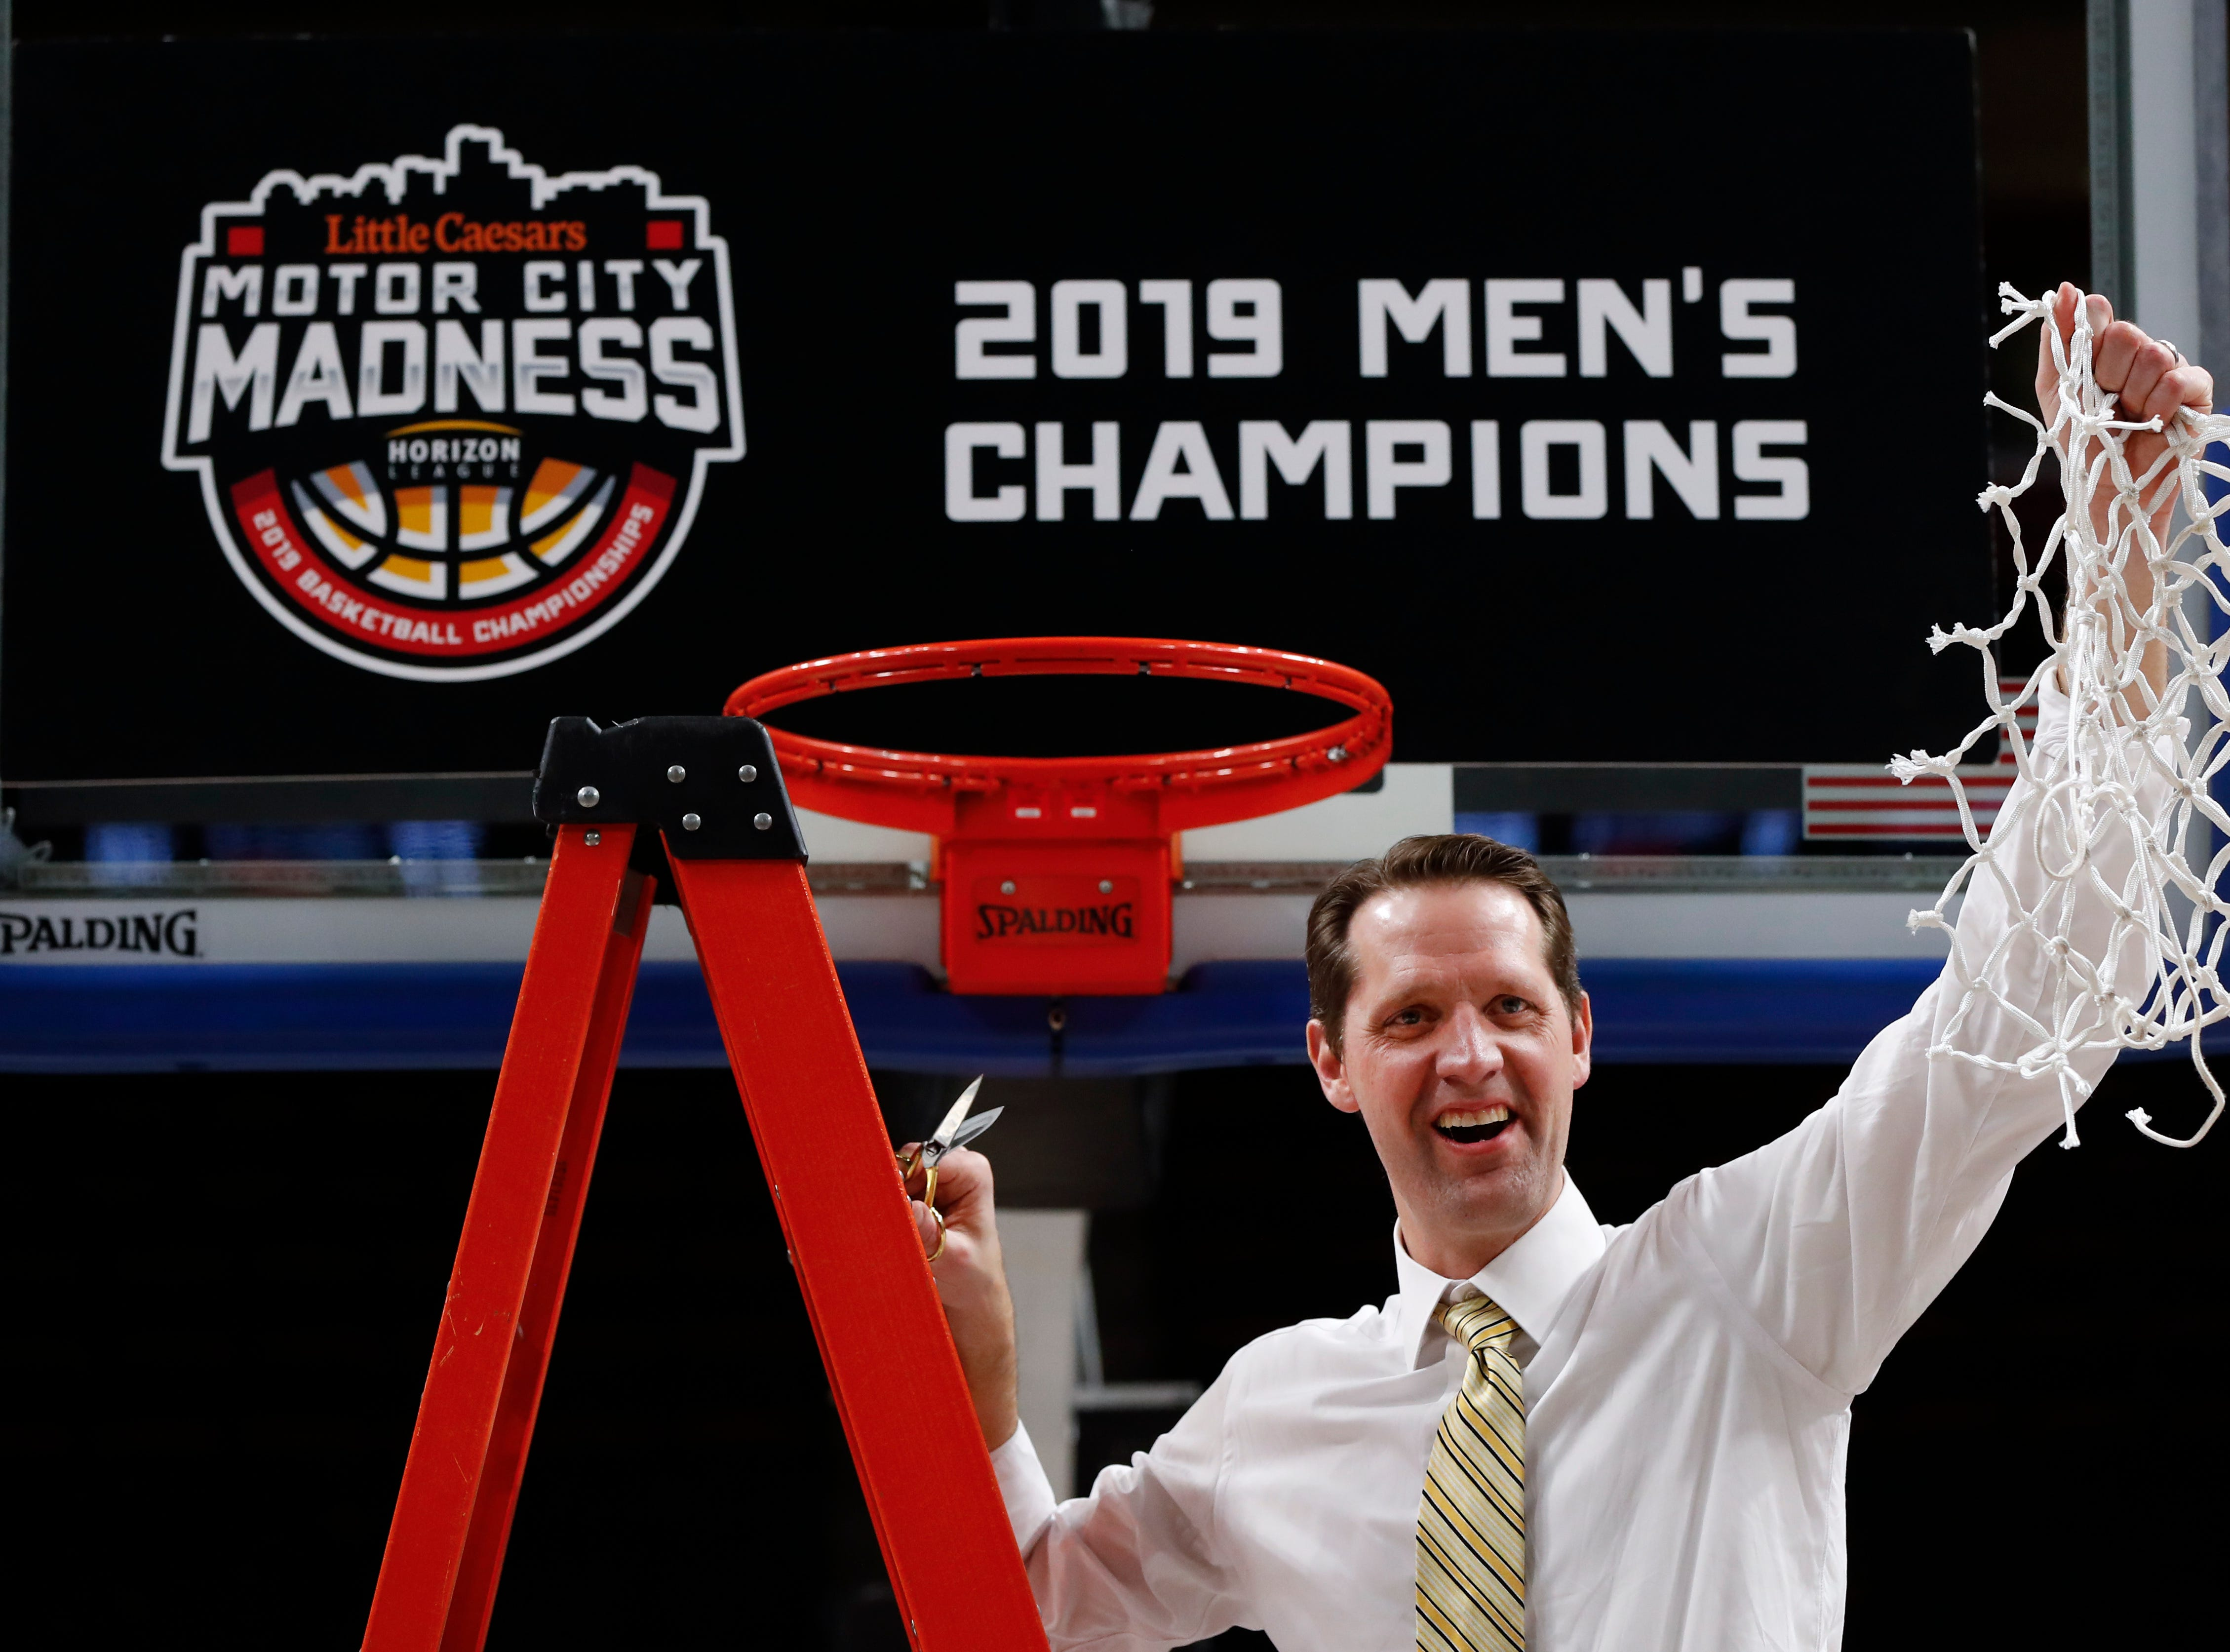 Northern Kentucky coach John Brannen holds up the net after the team's77-66 win against Wright State in an NCAA college basketball game for the Horizon League men's tournament championship in Detroit, Tuesday, March 12, 2019.